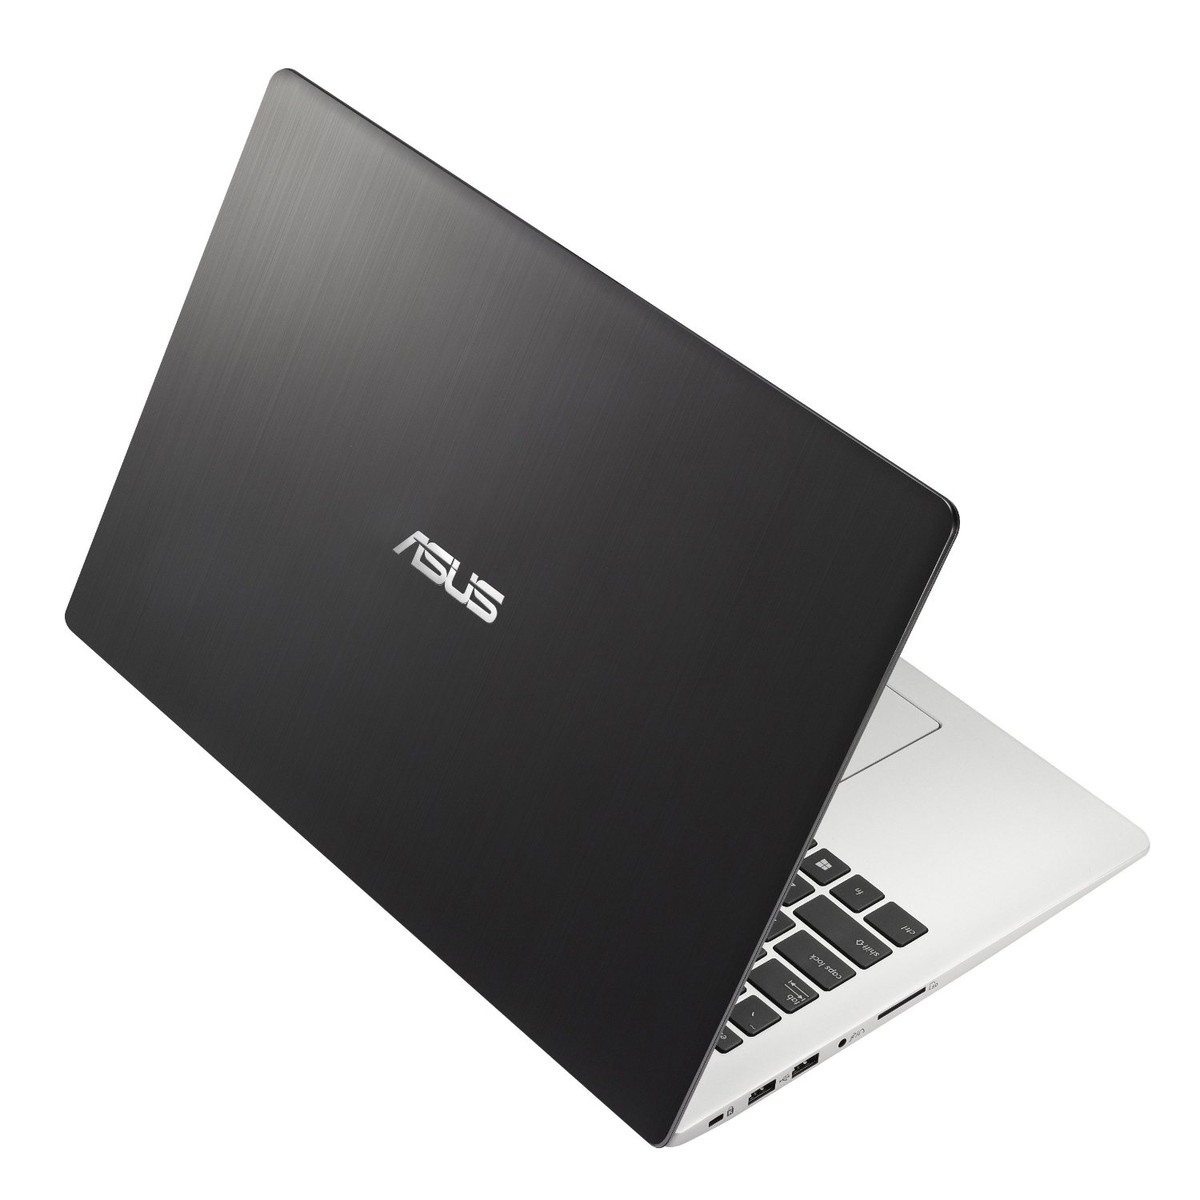 Notebook / Laptop Reviews and News > Library > Asus > Asus VivoBook ...